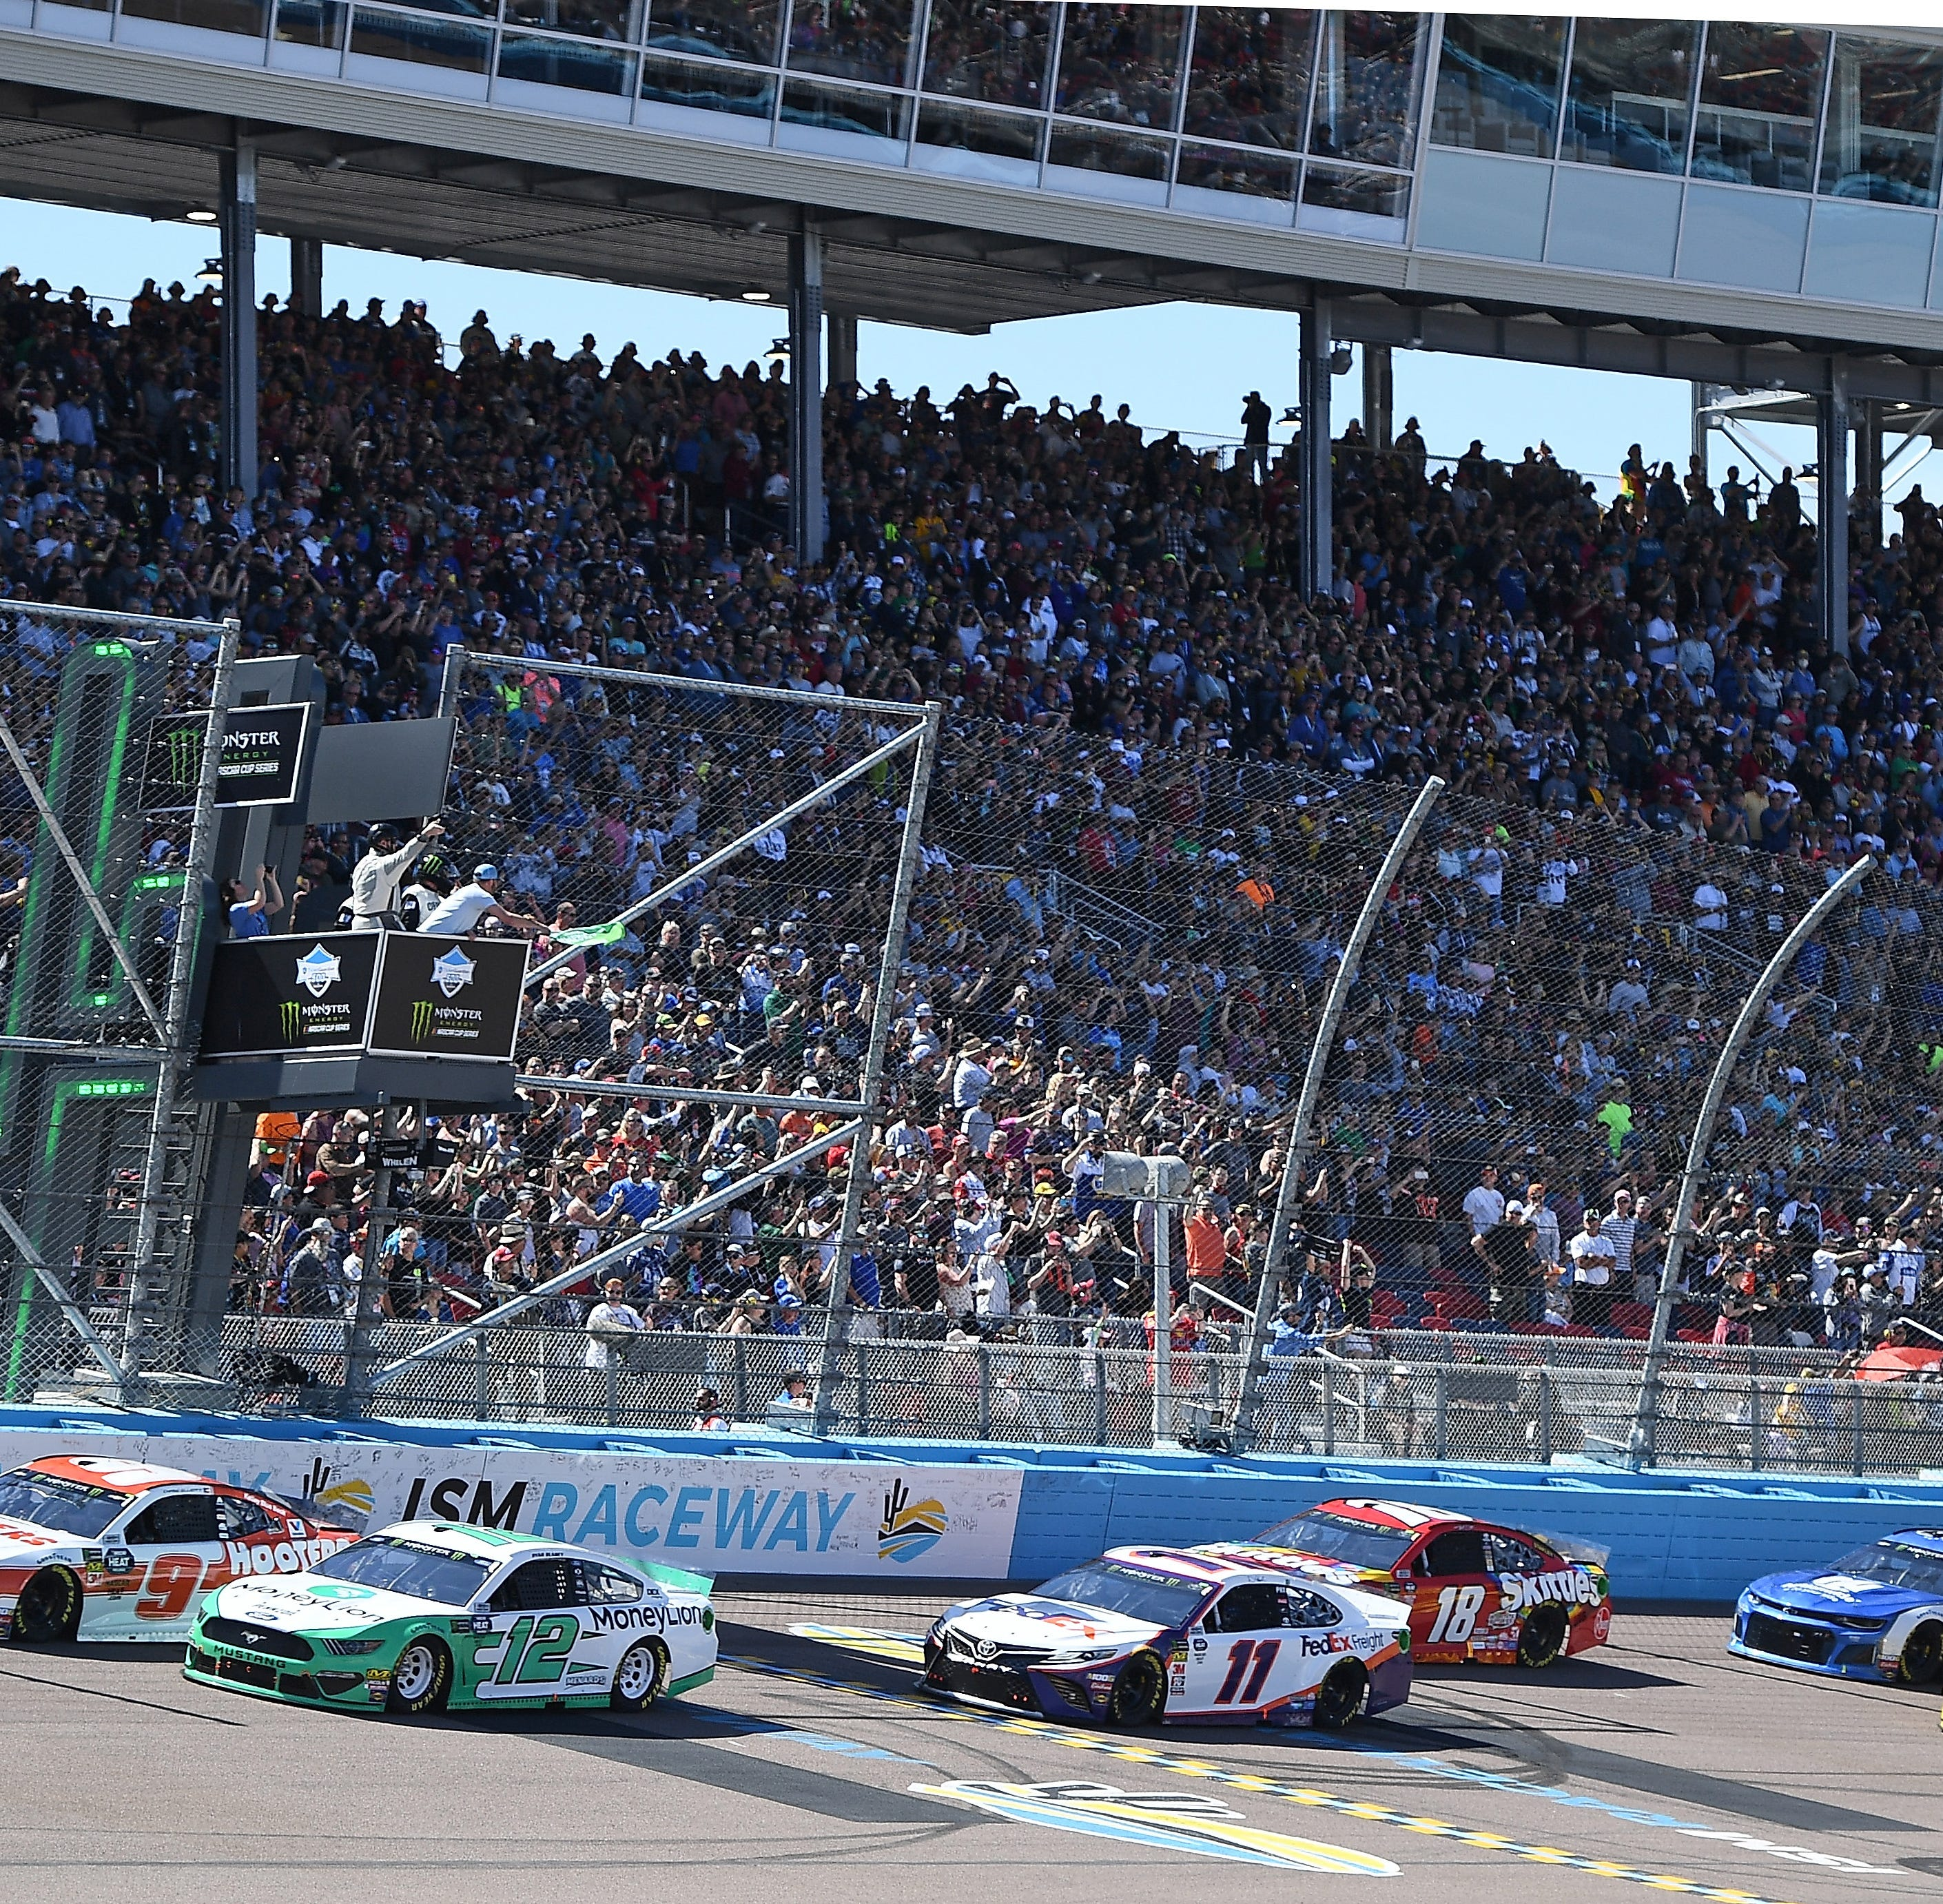 NASCAR buys ISM Raceway parent company International Speedway Corp. for $2 billion